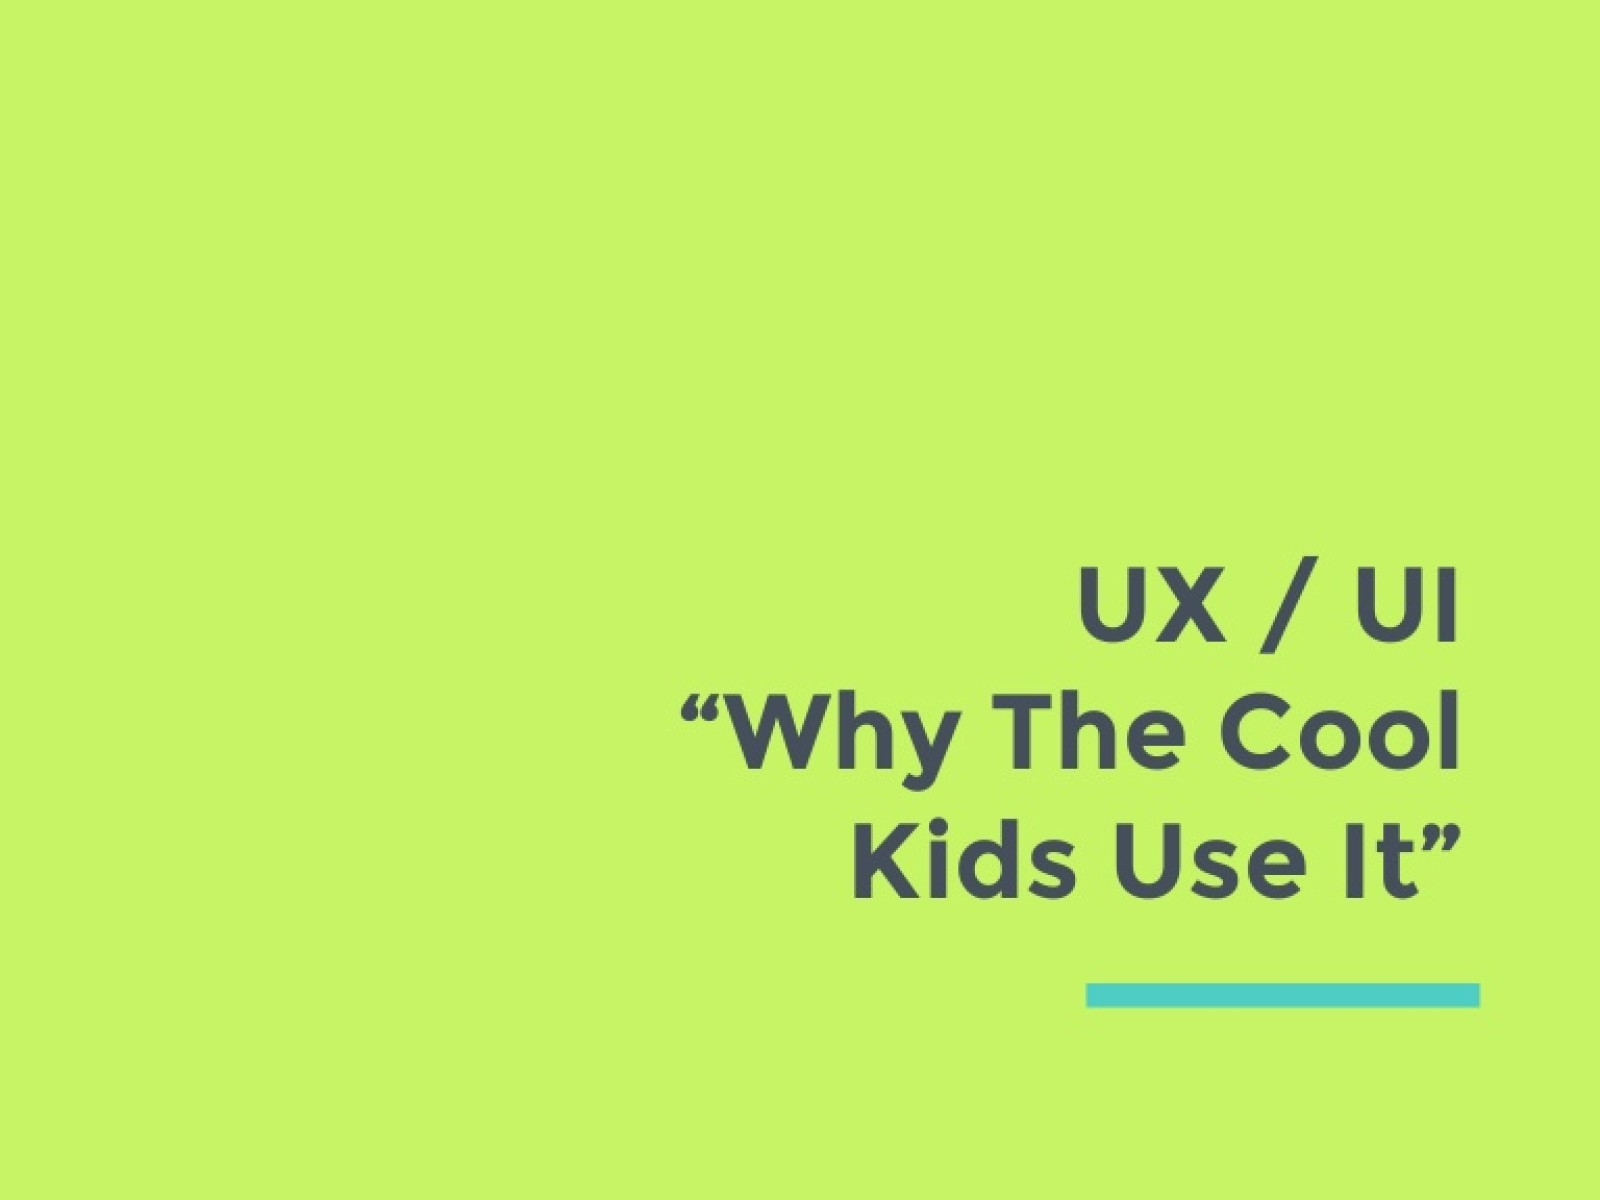 UX/UI: Why the Cool Kids Use It